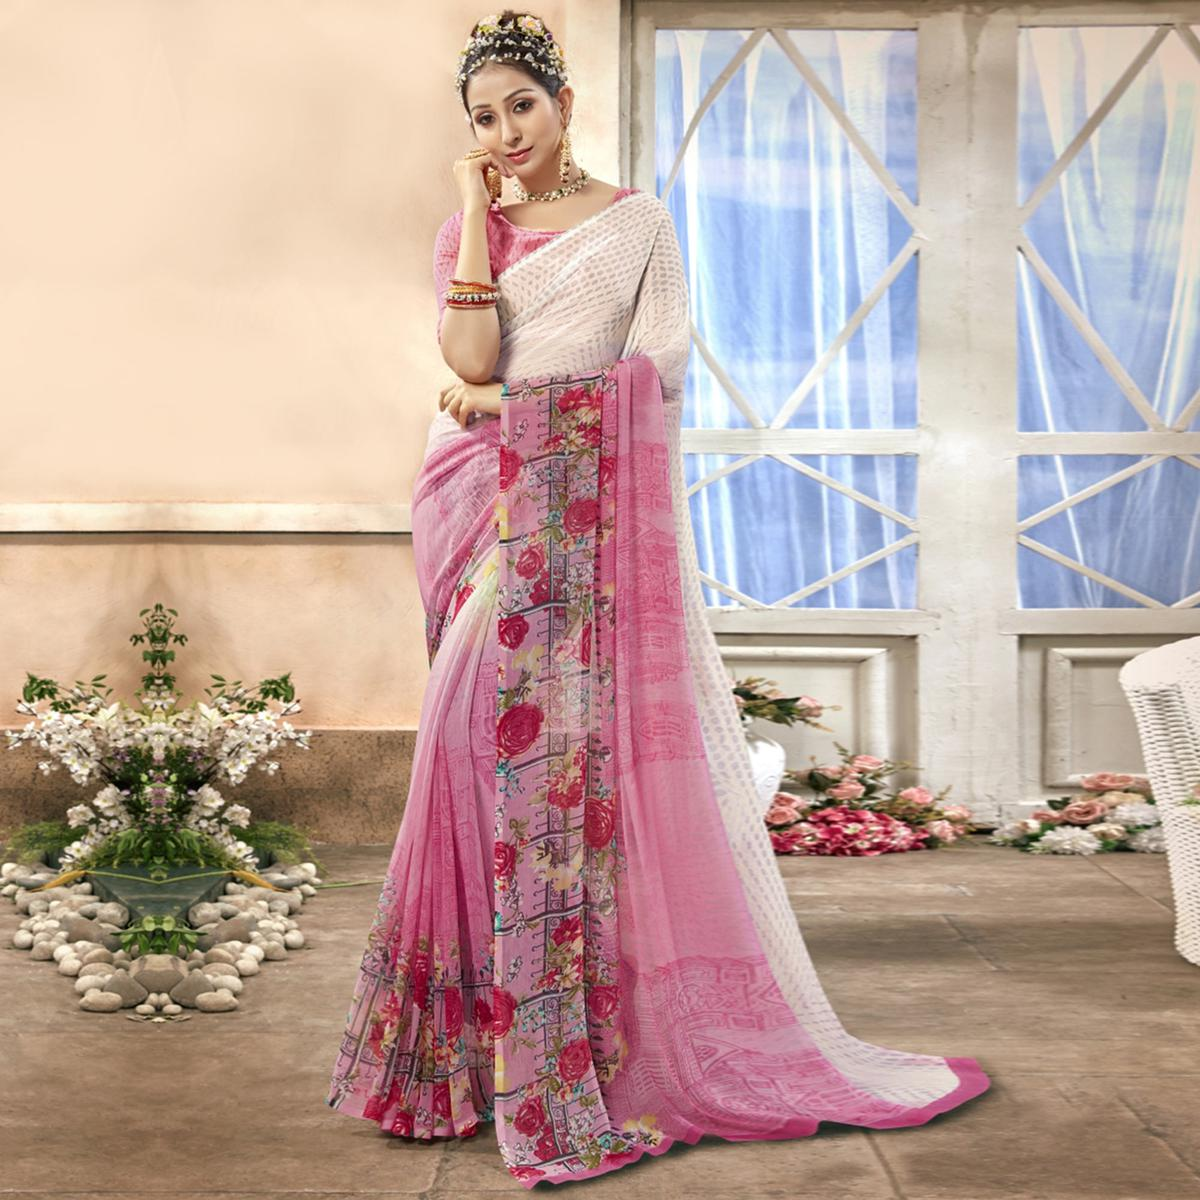 Engrossing Pink Colored Casual Printed Chiffon Saree